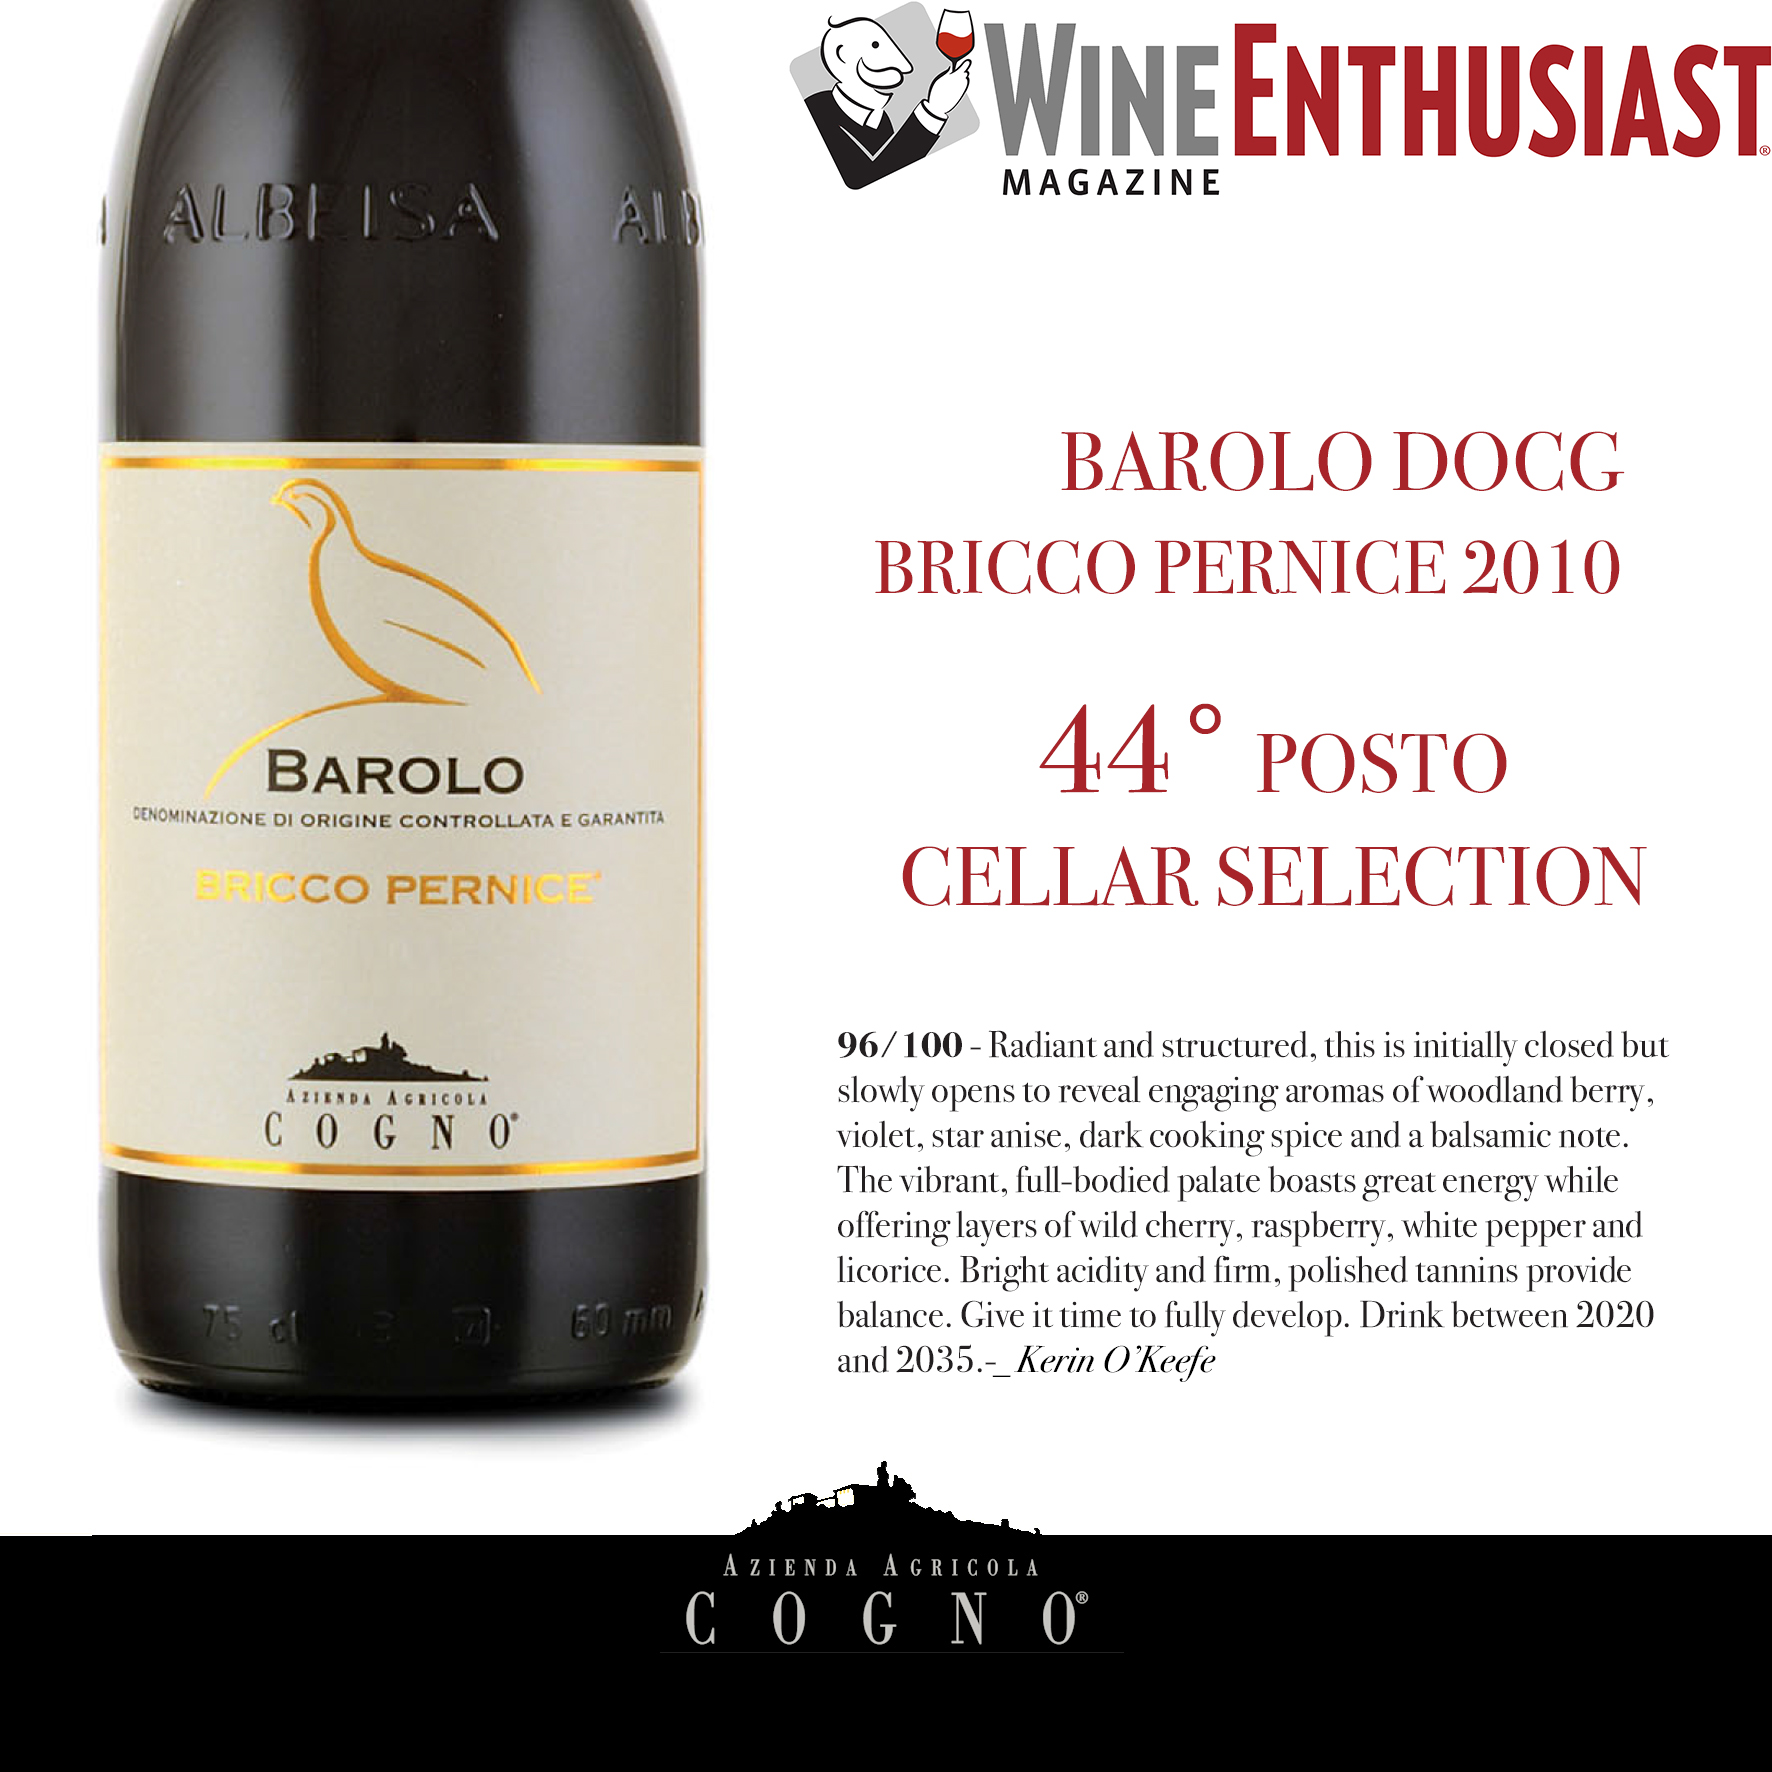 Barolo Bricco Pernice 2010 on Wine Enthusiast Cellar Selection